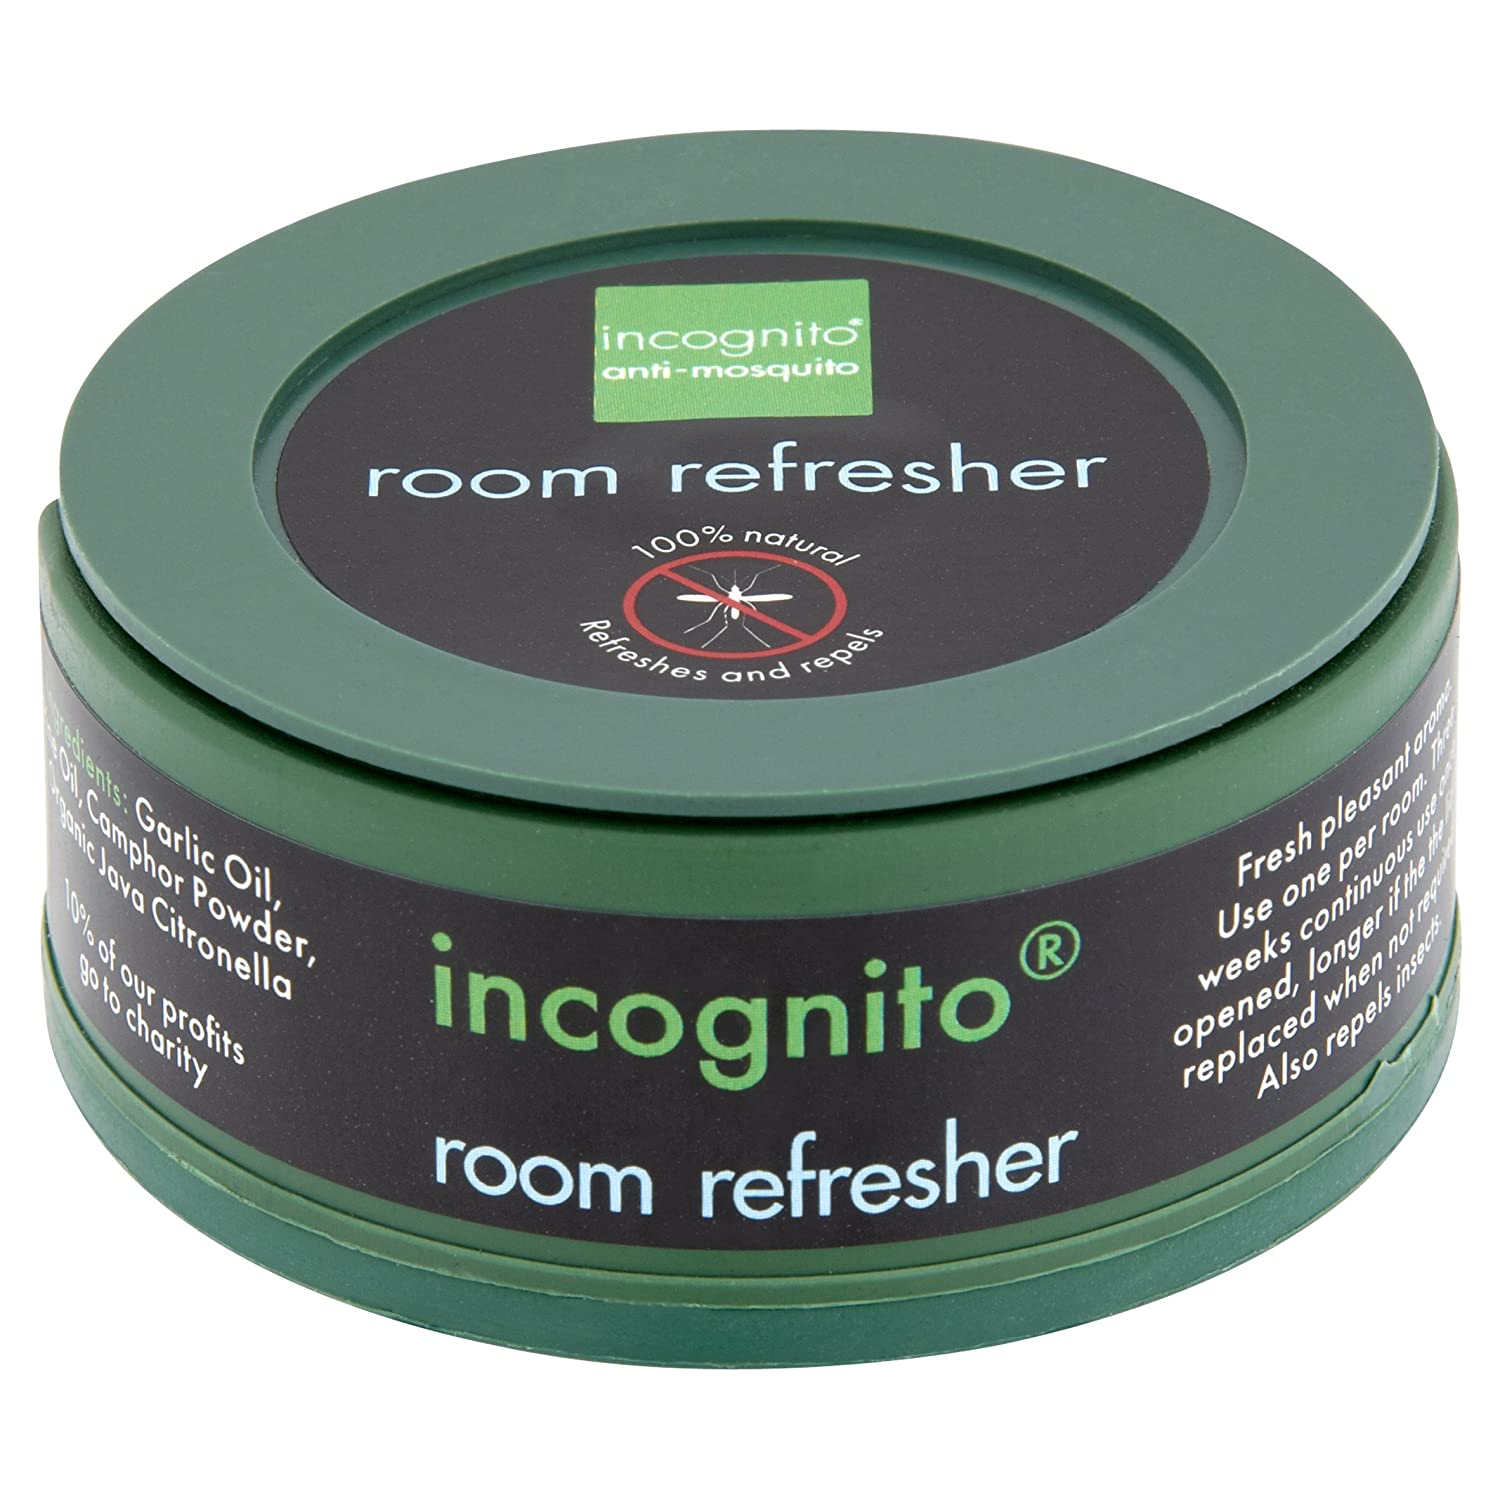 Incognito Less Mosquito Insect Repellent Room Refresher Merchant City Group ICO-ROOM1